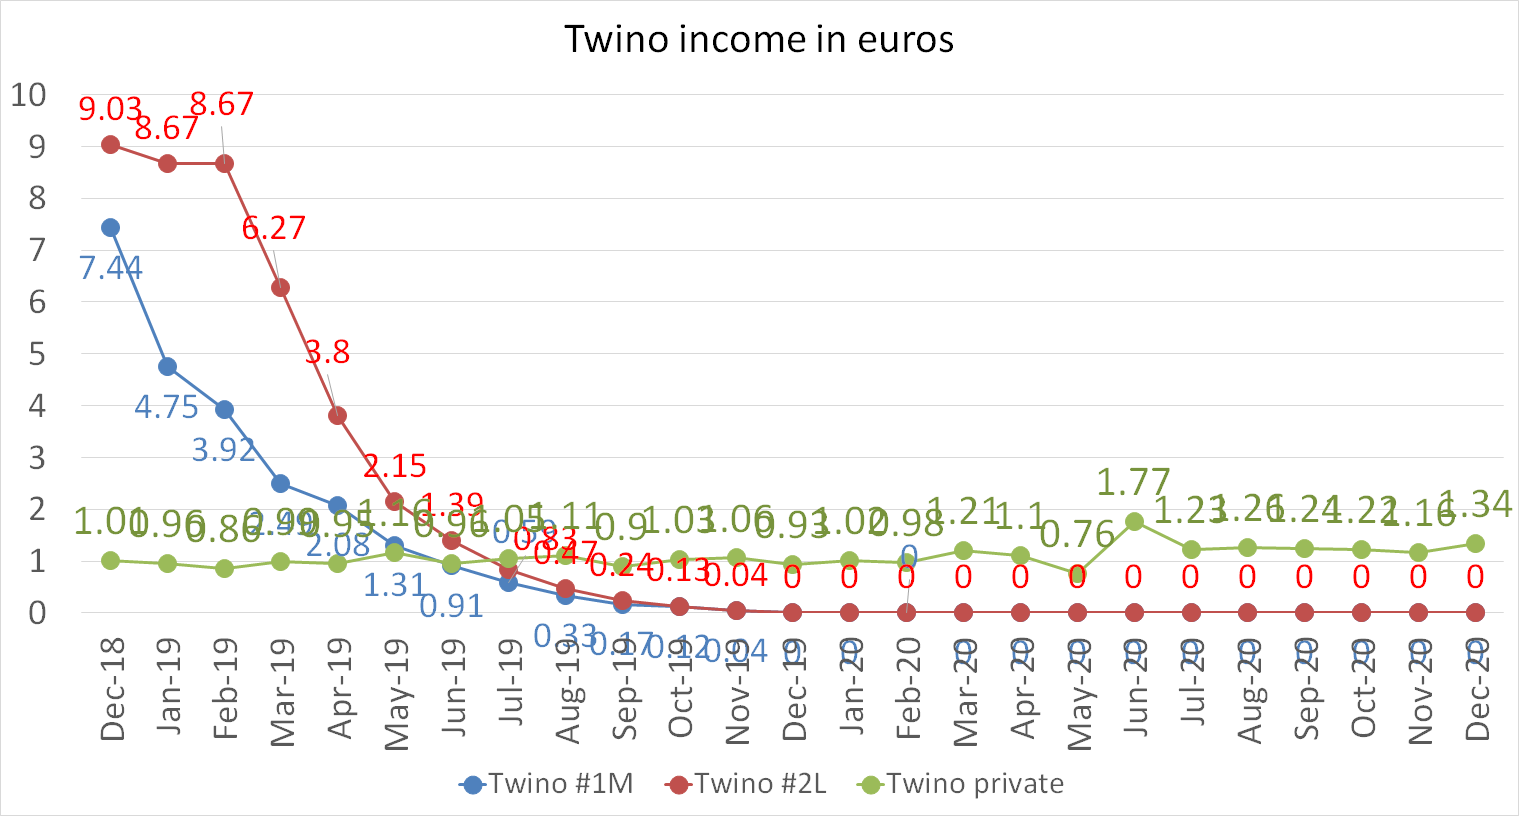 Twino income in euros december 2020